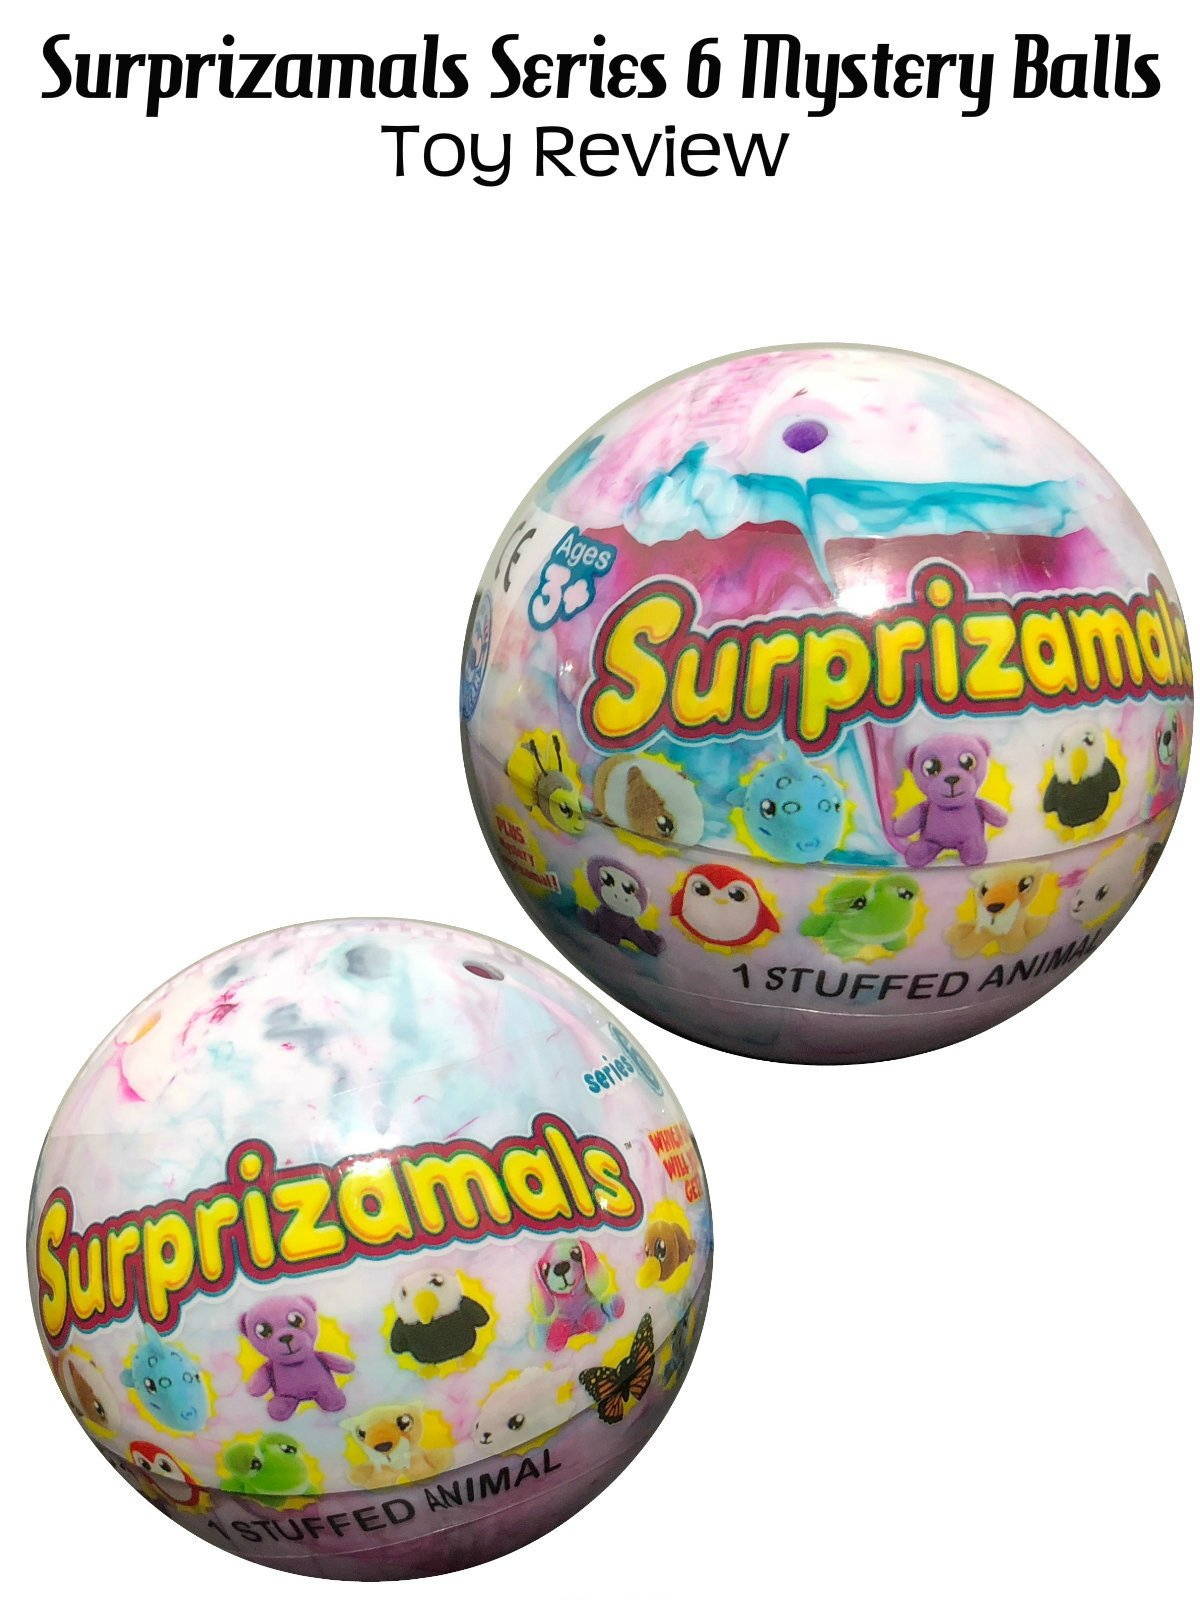 Review: Surprizamals Series 6 Mystery Balls Toy Review